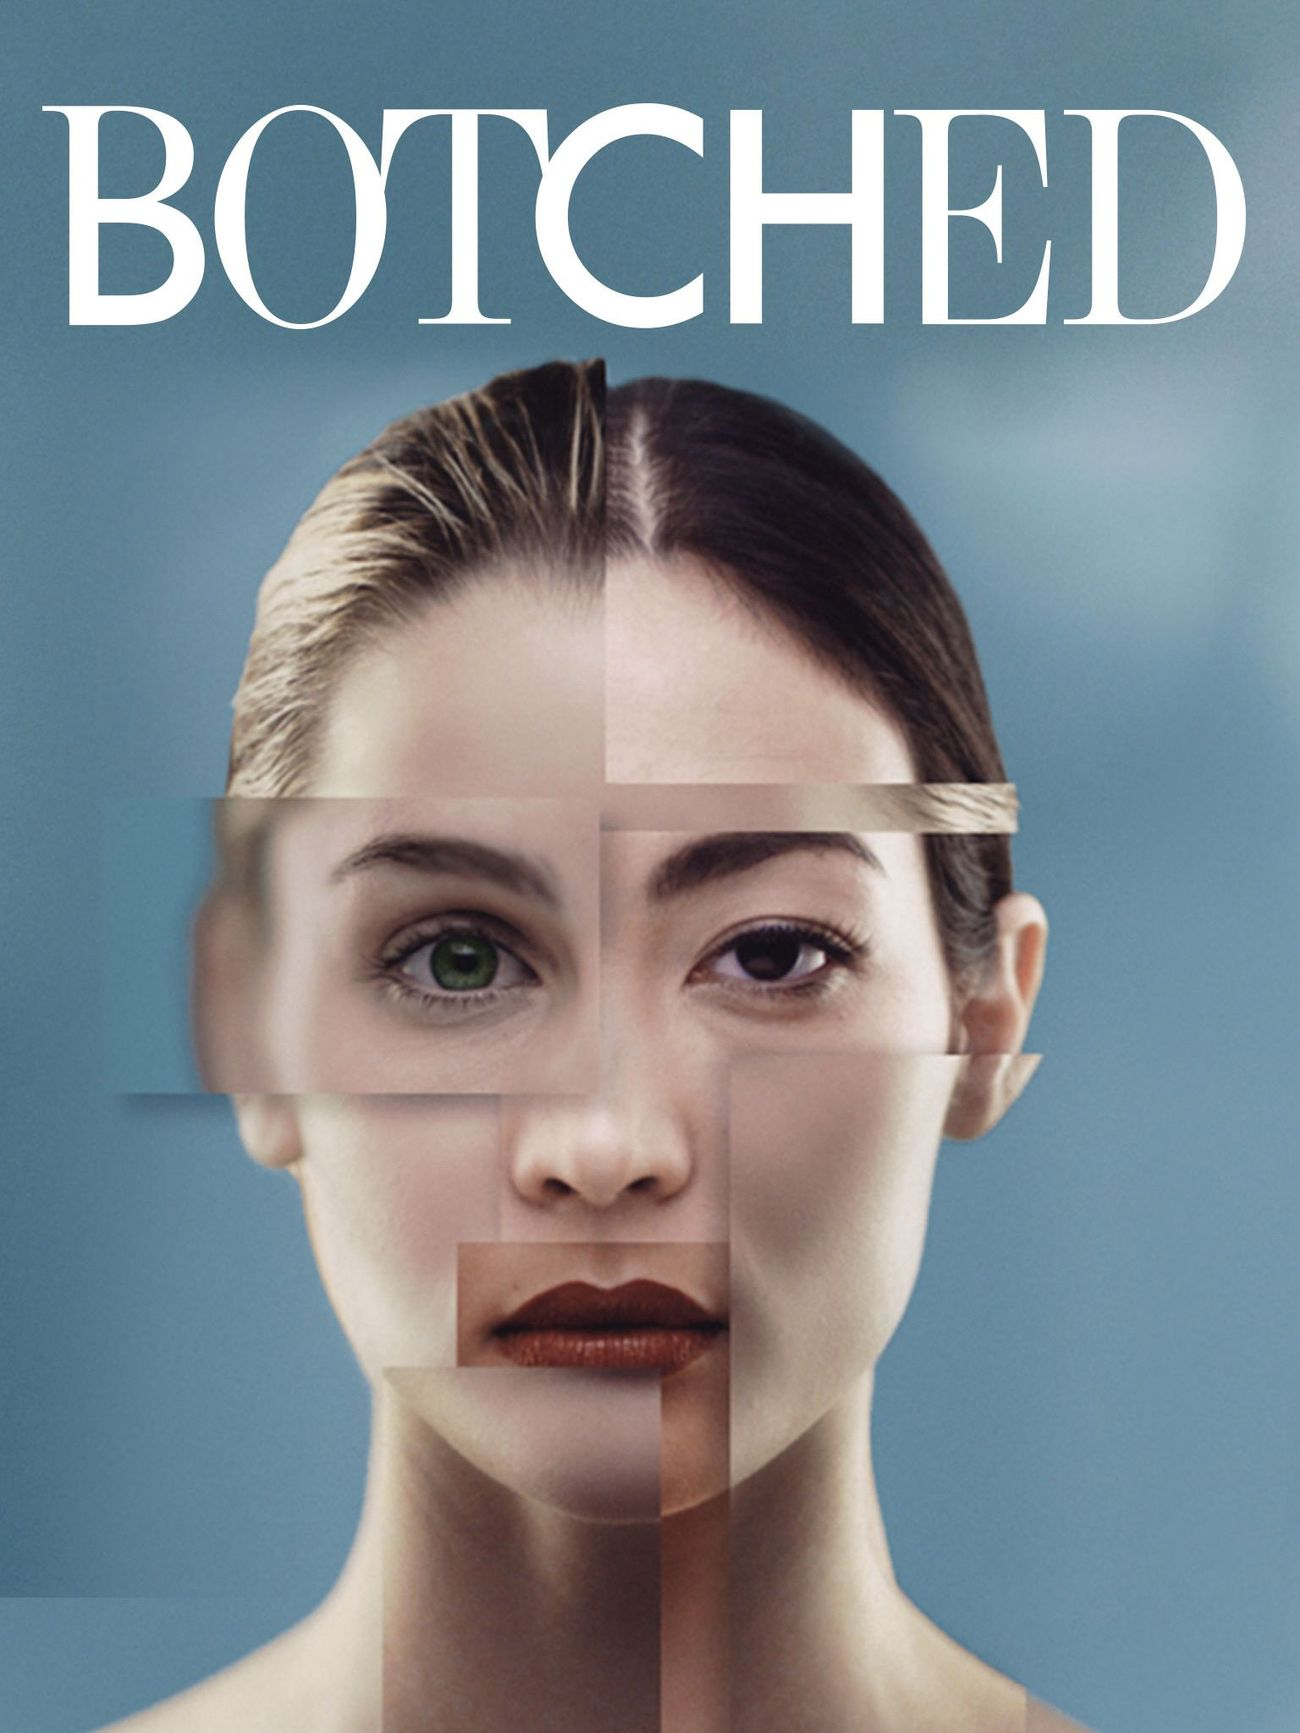 Botched - Season 5 Episode 16